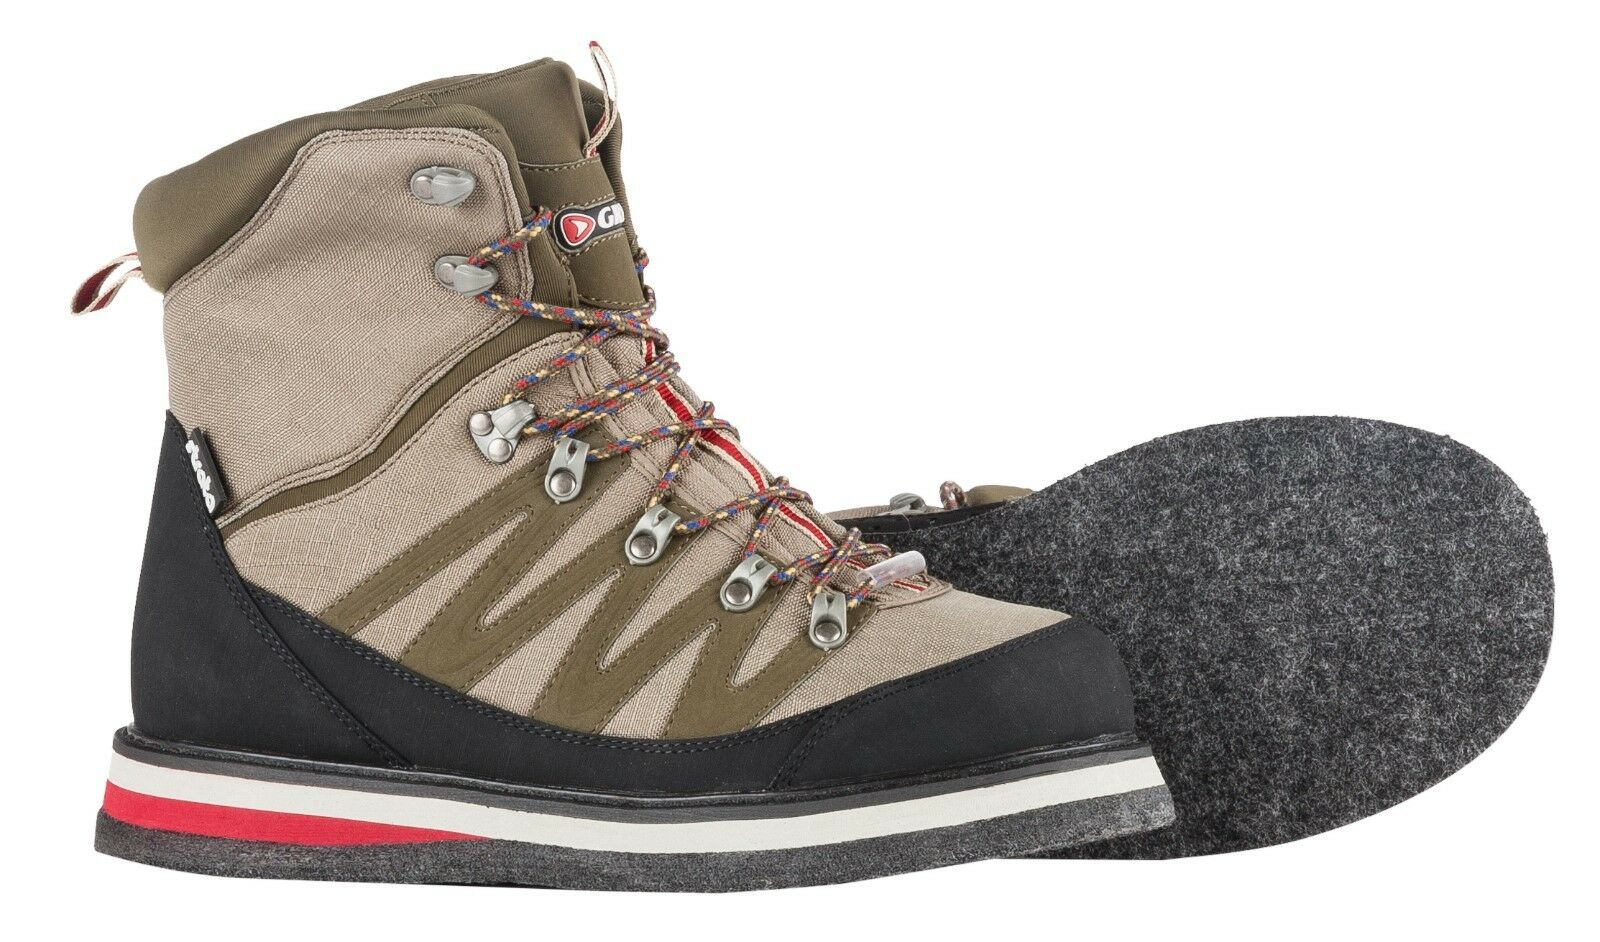 Greys Strata CT WADING BOOTS - Felt or Rubber - All Sizes